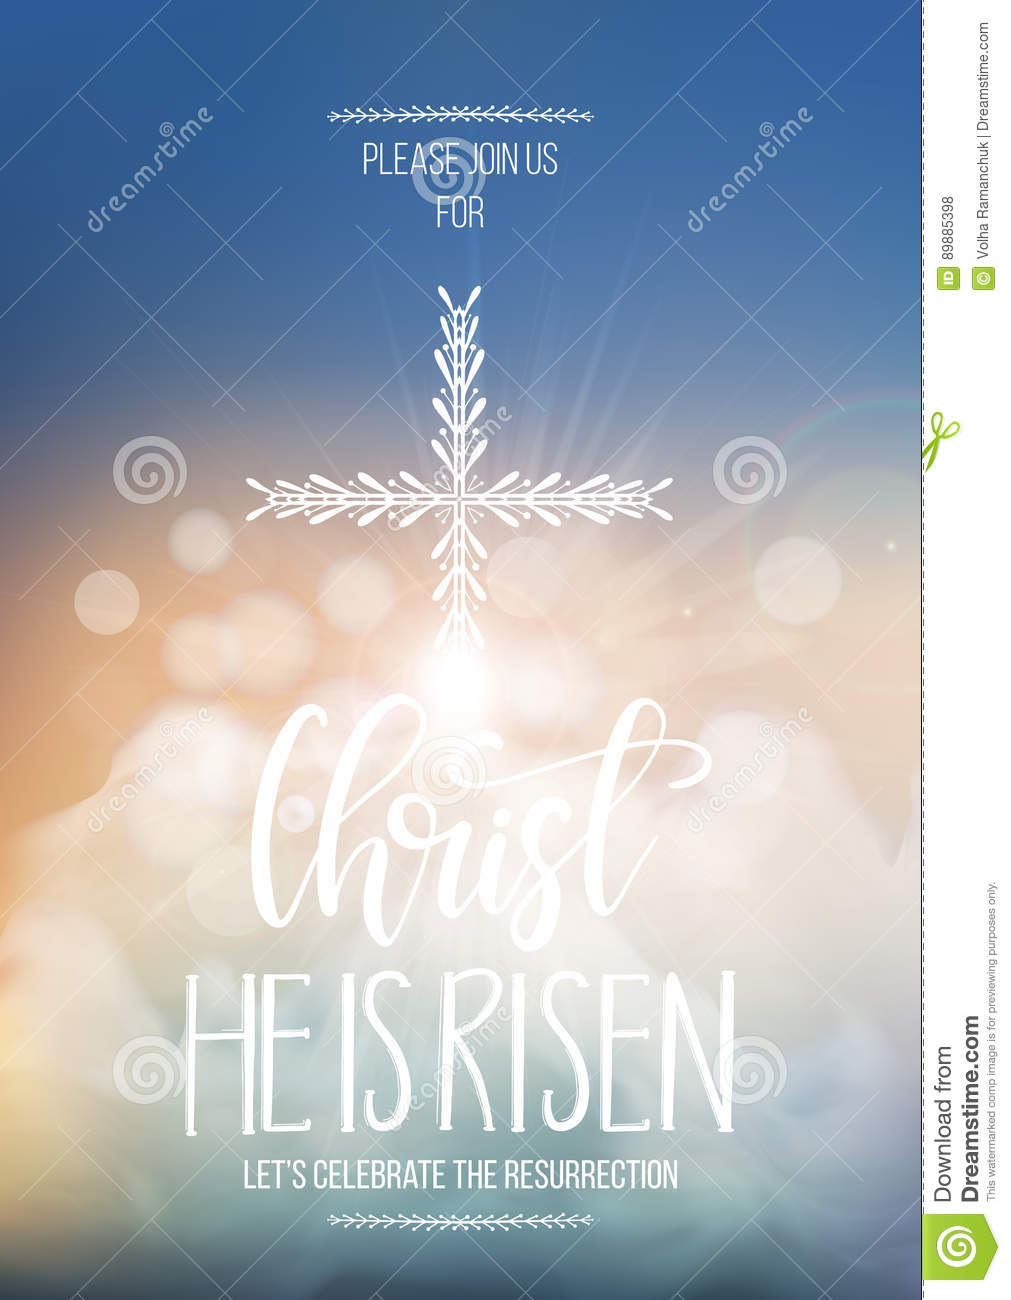 christ he is risen easter religious poster template stock